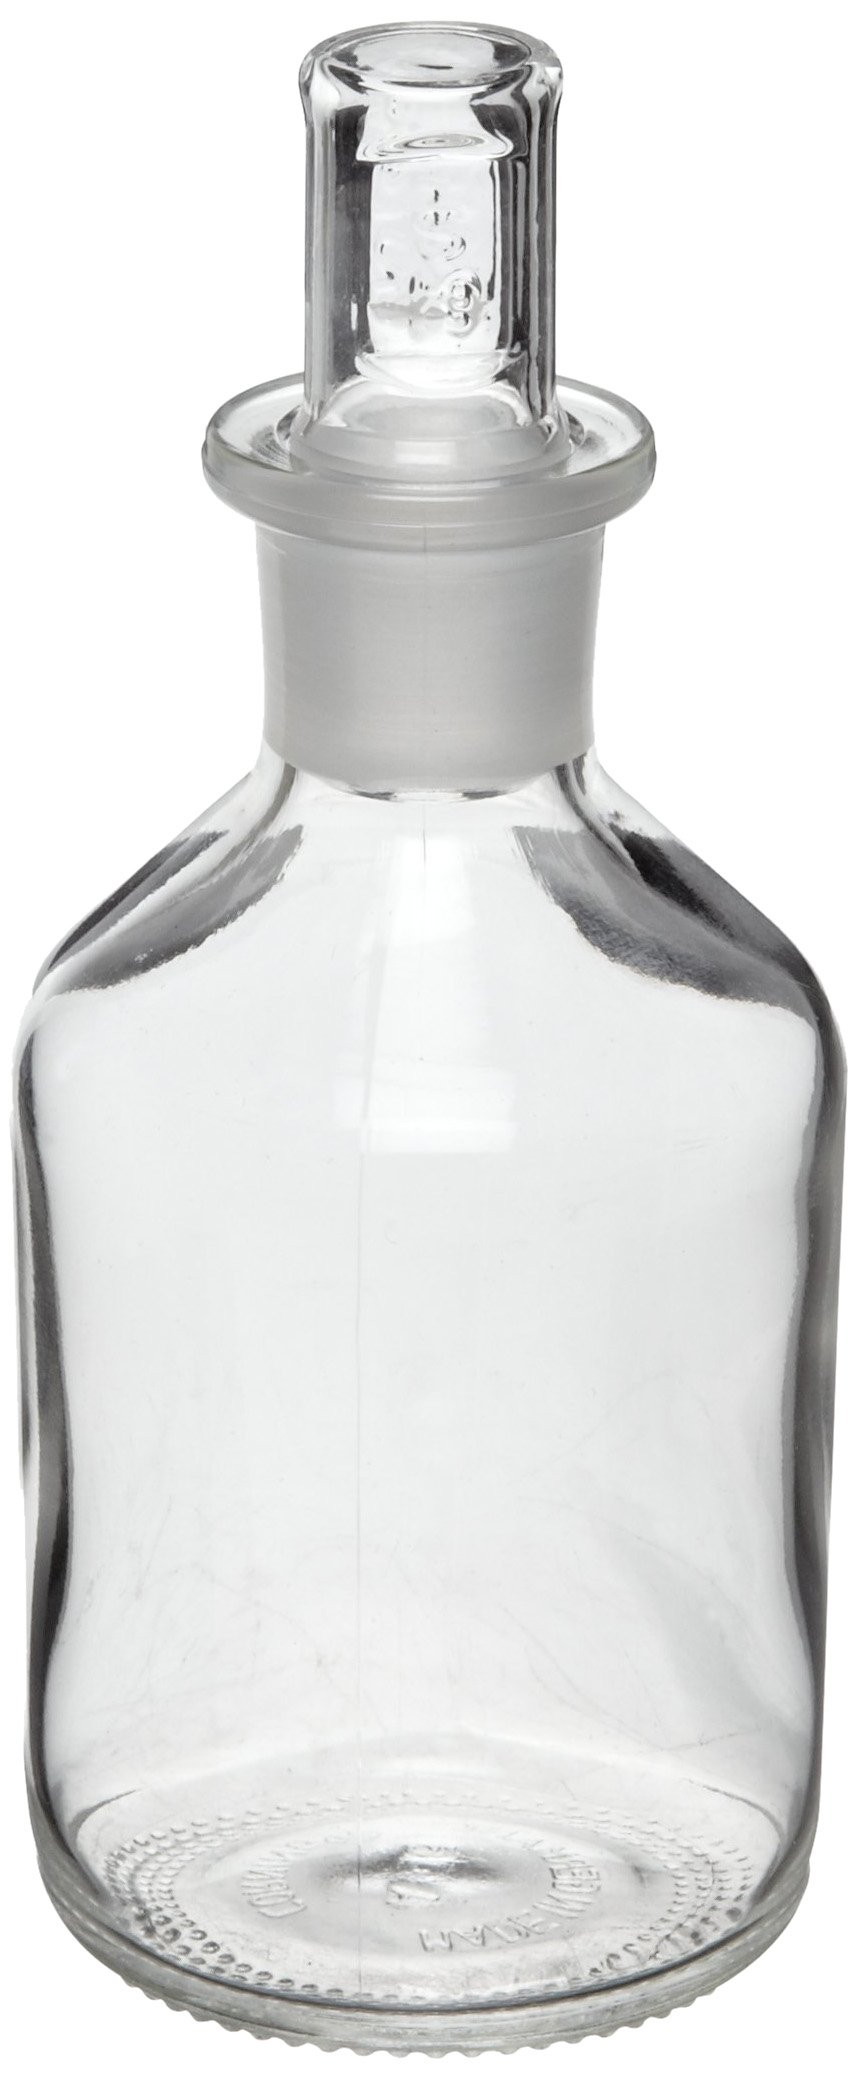 Corning Pyrex Narrow Mouth Reagent Bottle With Standard Taper Stopper, 1L (Pack of 1)